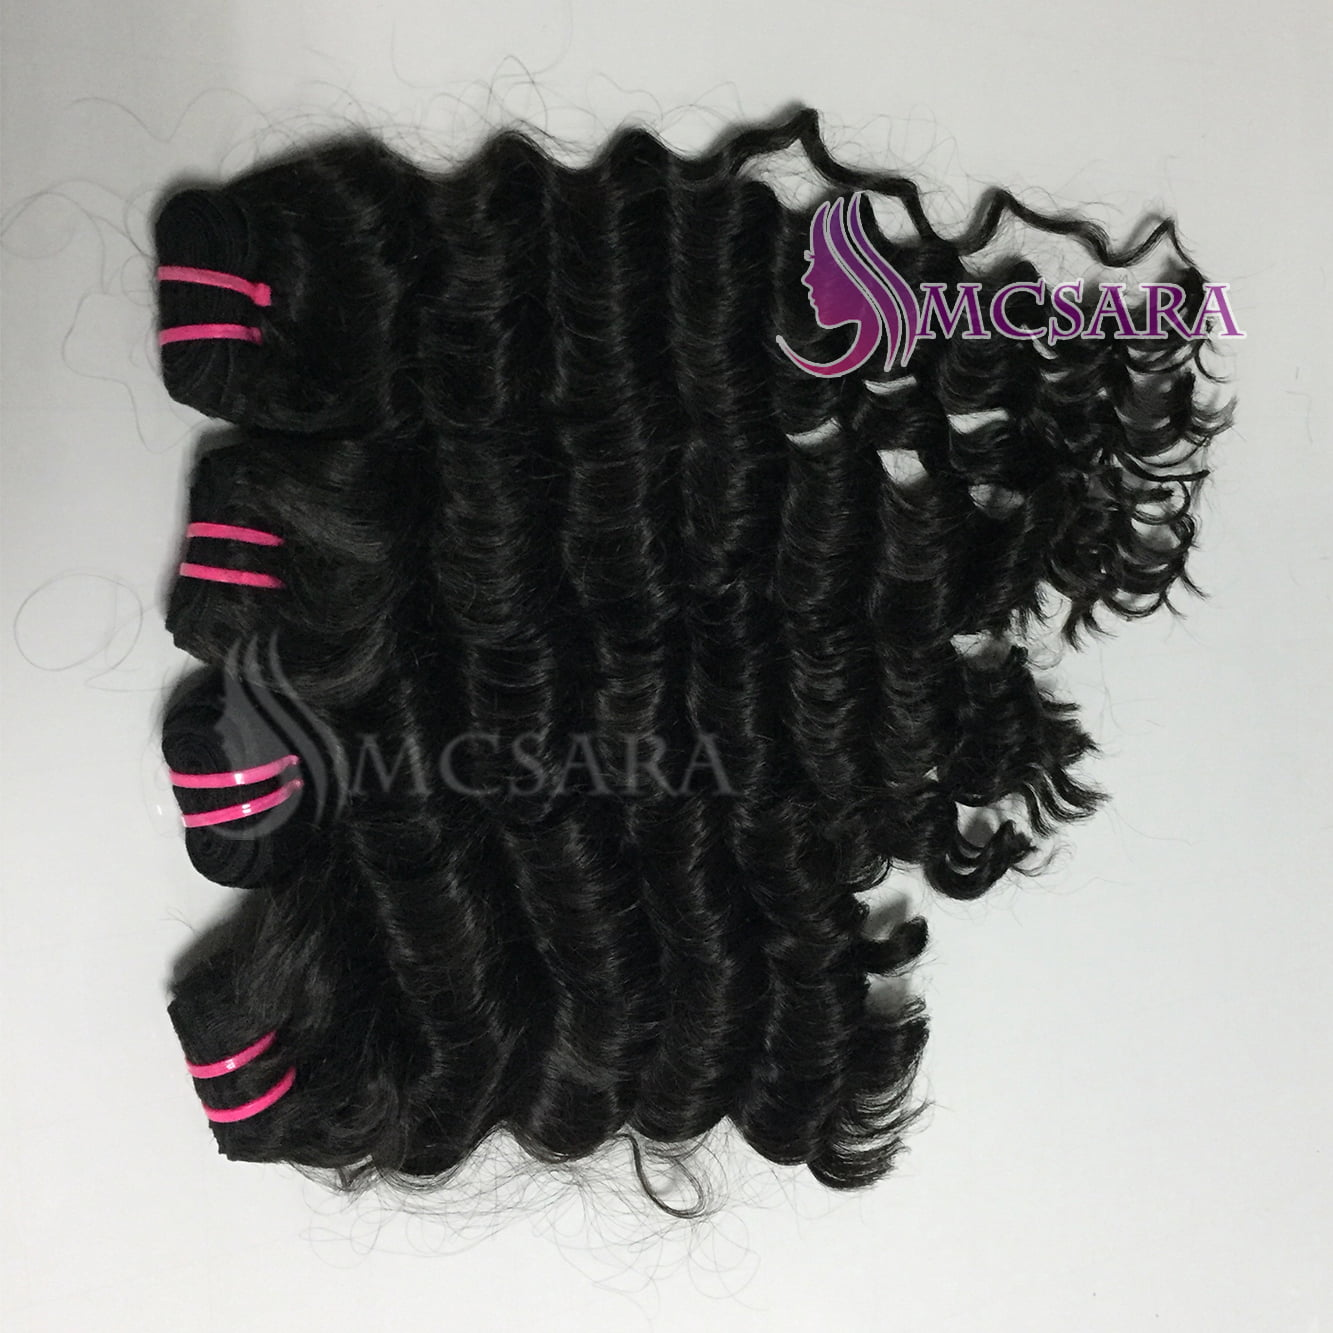 16 18 20 Inches Weave Wavy Hair Extensions